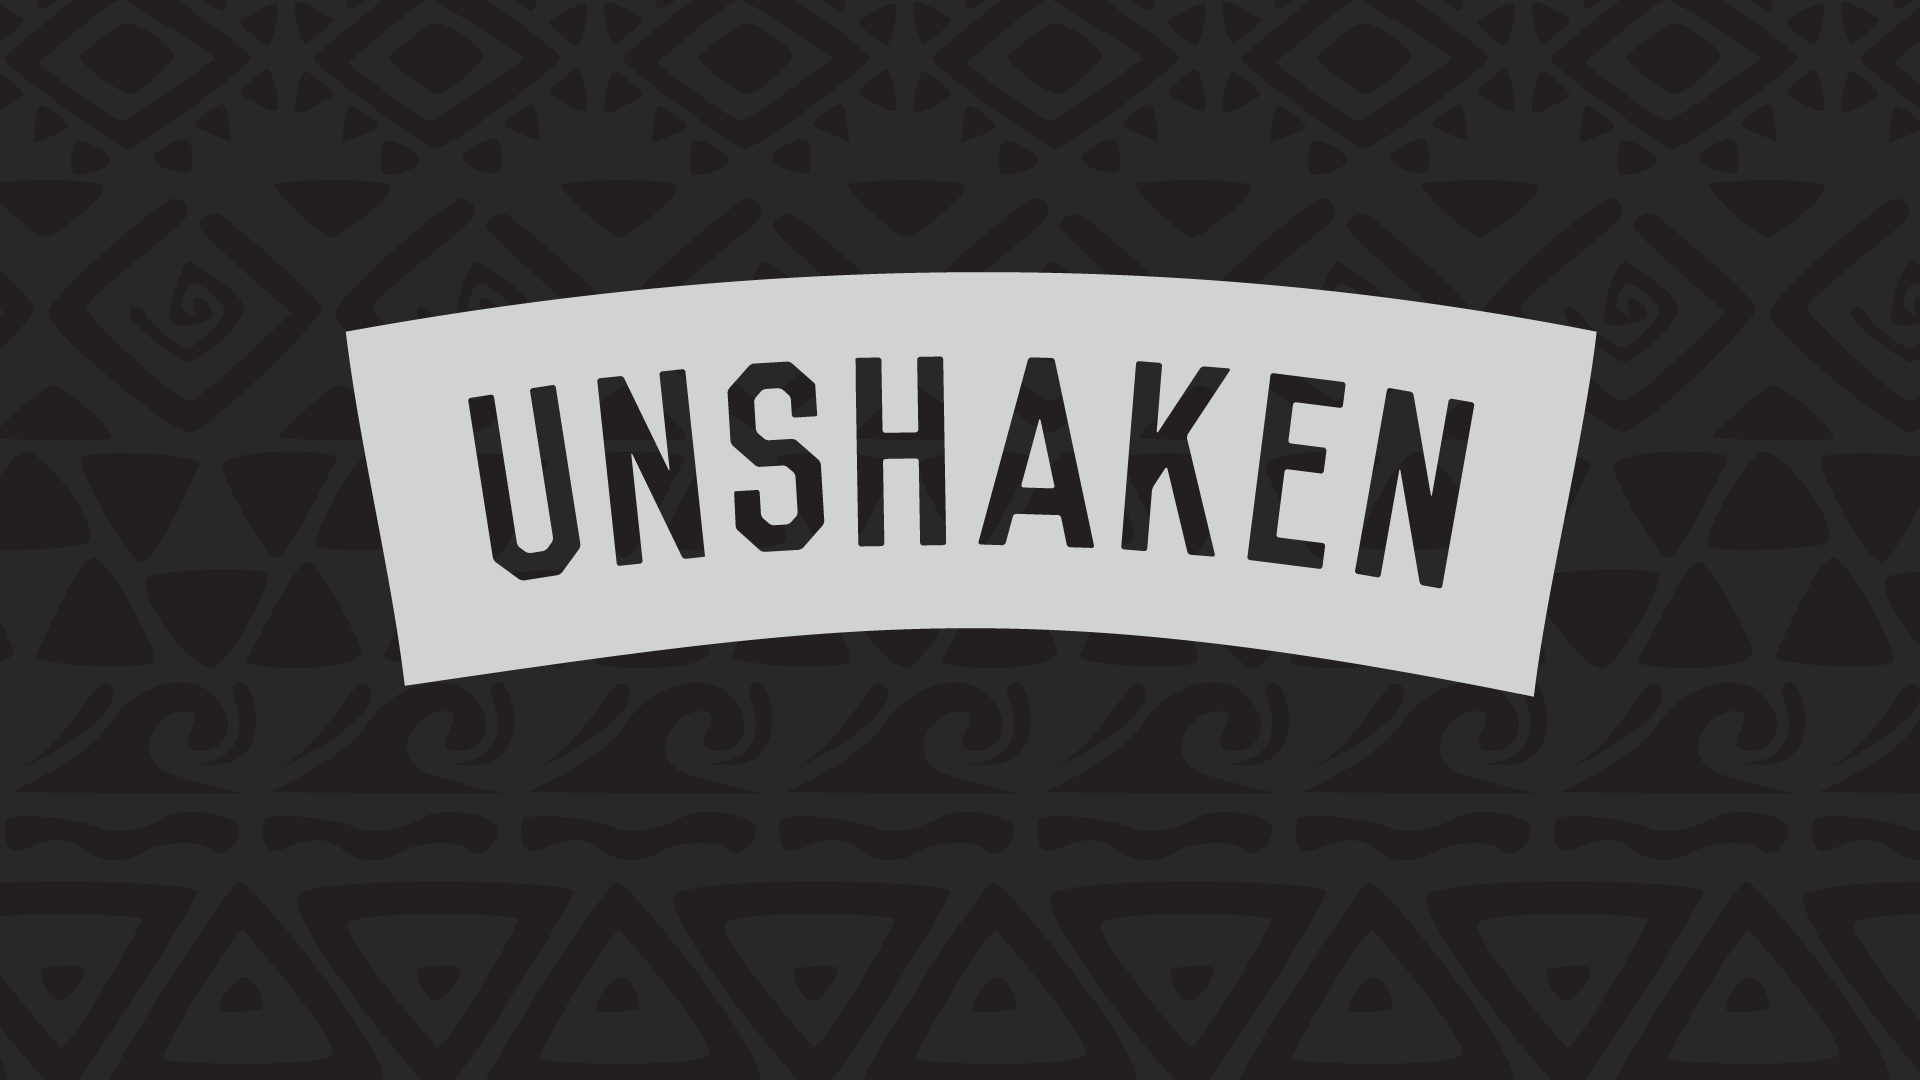 Unshaken by Mess